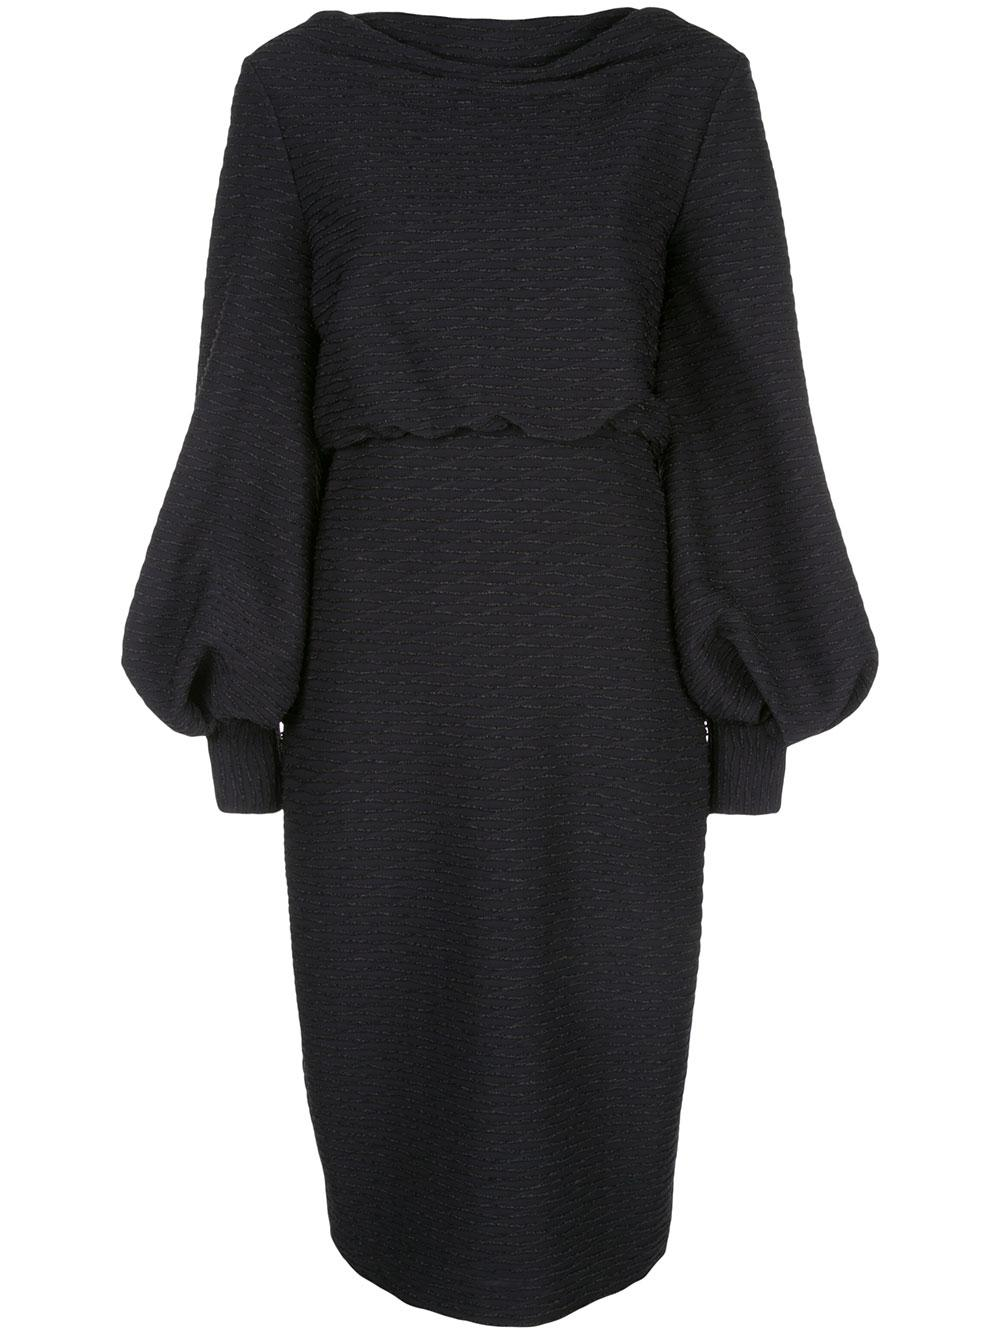 Blouson Sleeve Wavy Lurex Knit Dress Item # SC2446